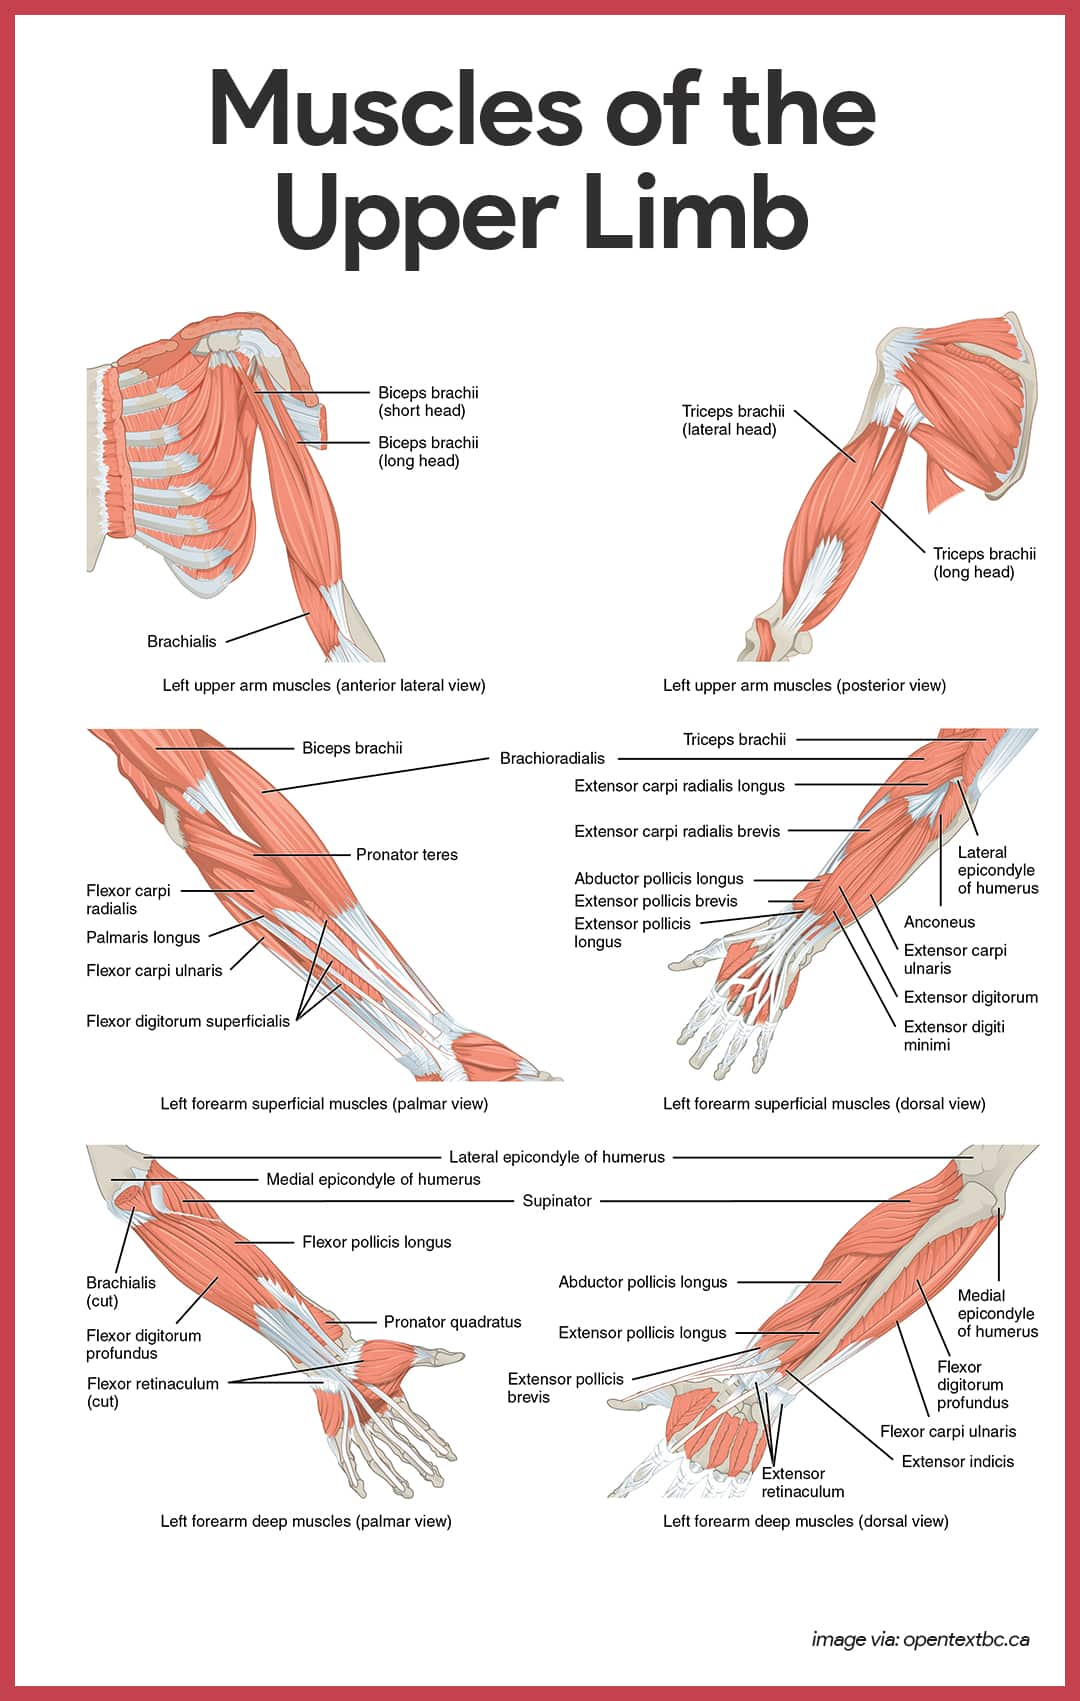 Muscles of the Upper Limb- Muscular System